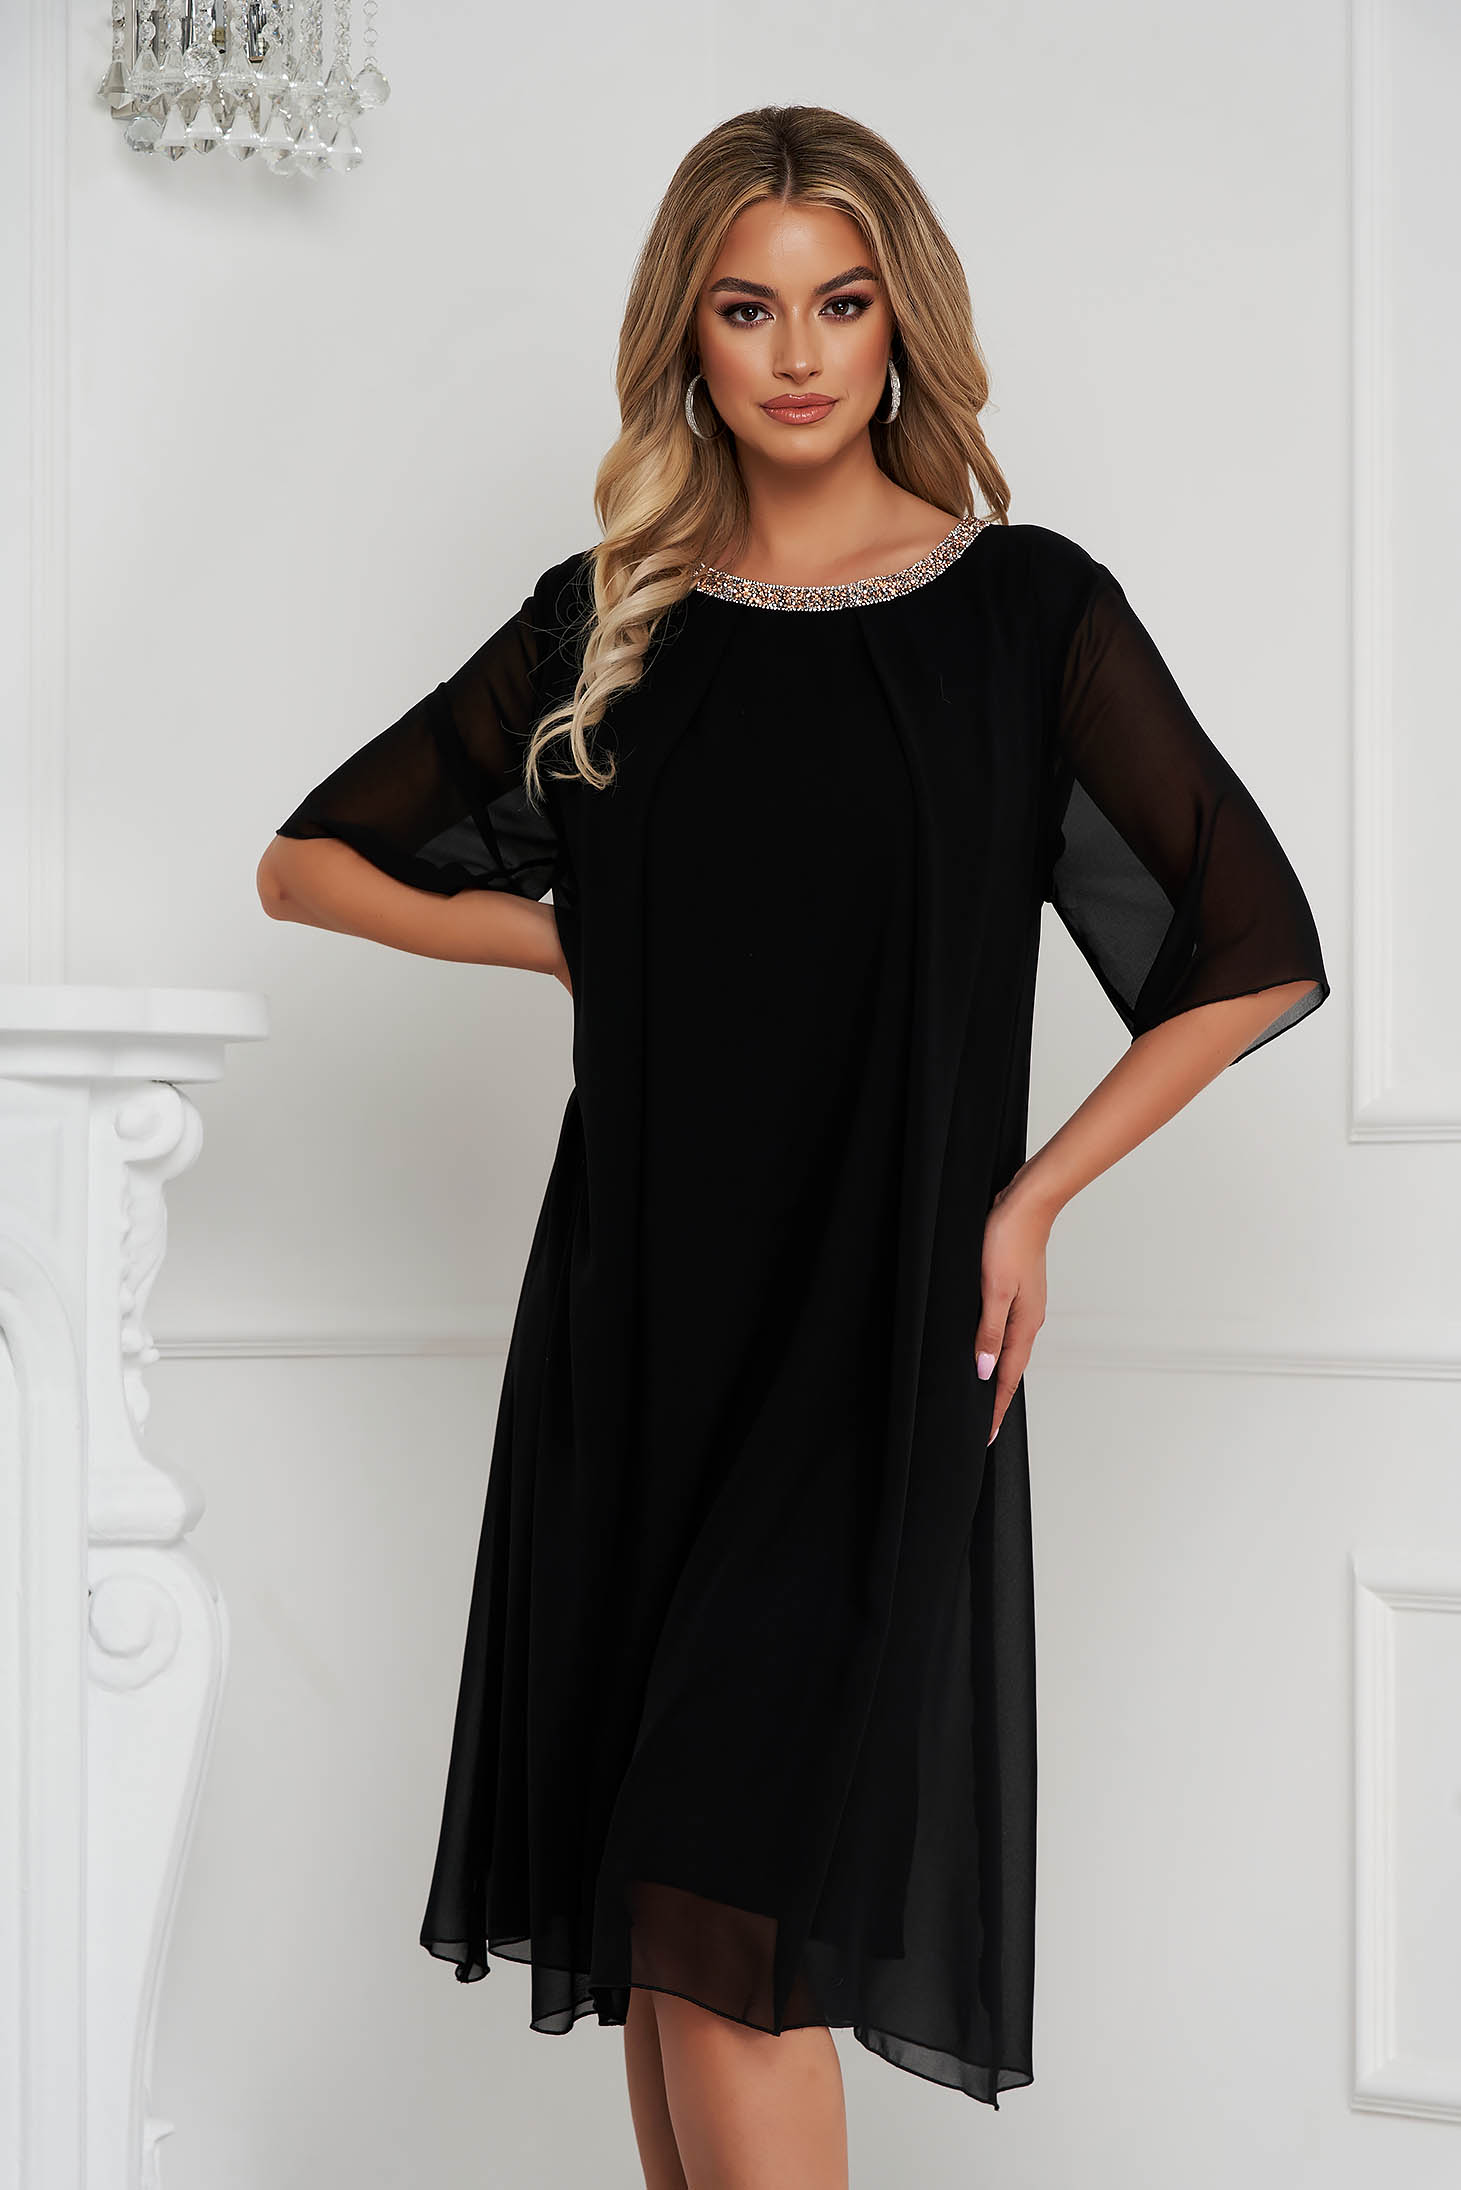 From veil fabric midi loose fit with crystal embellished details black dress occasional